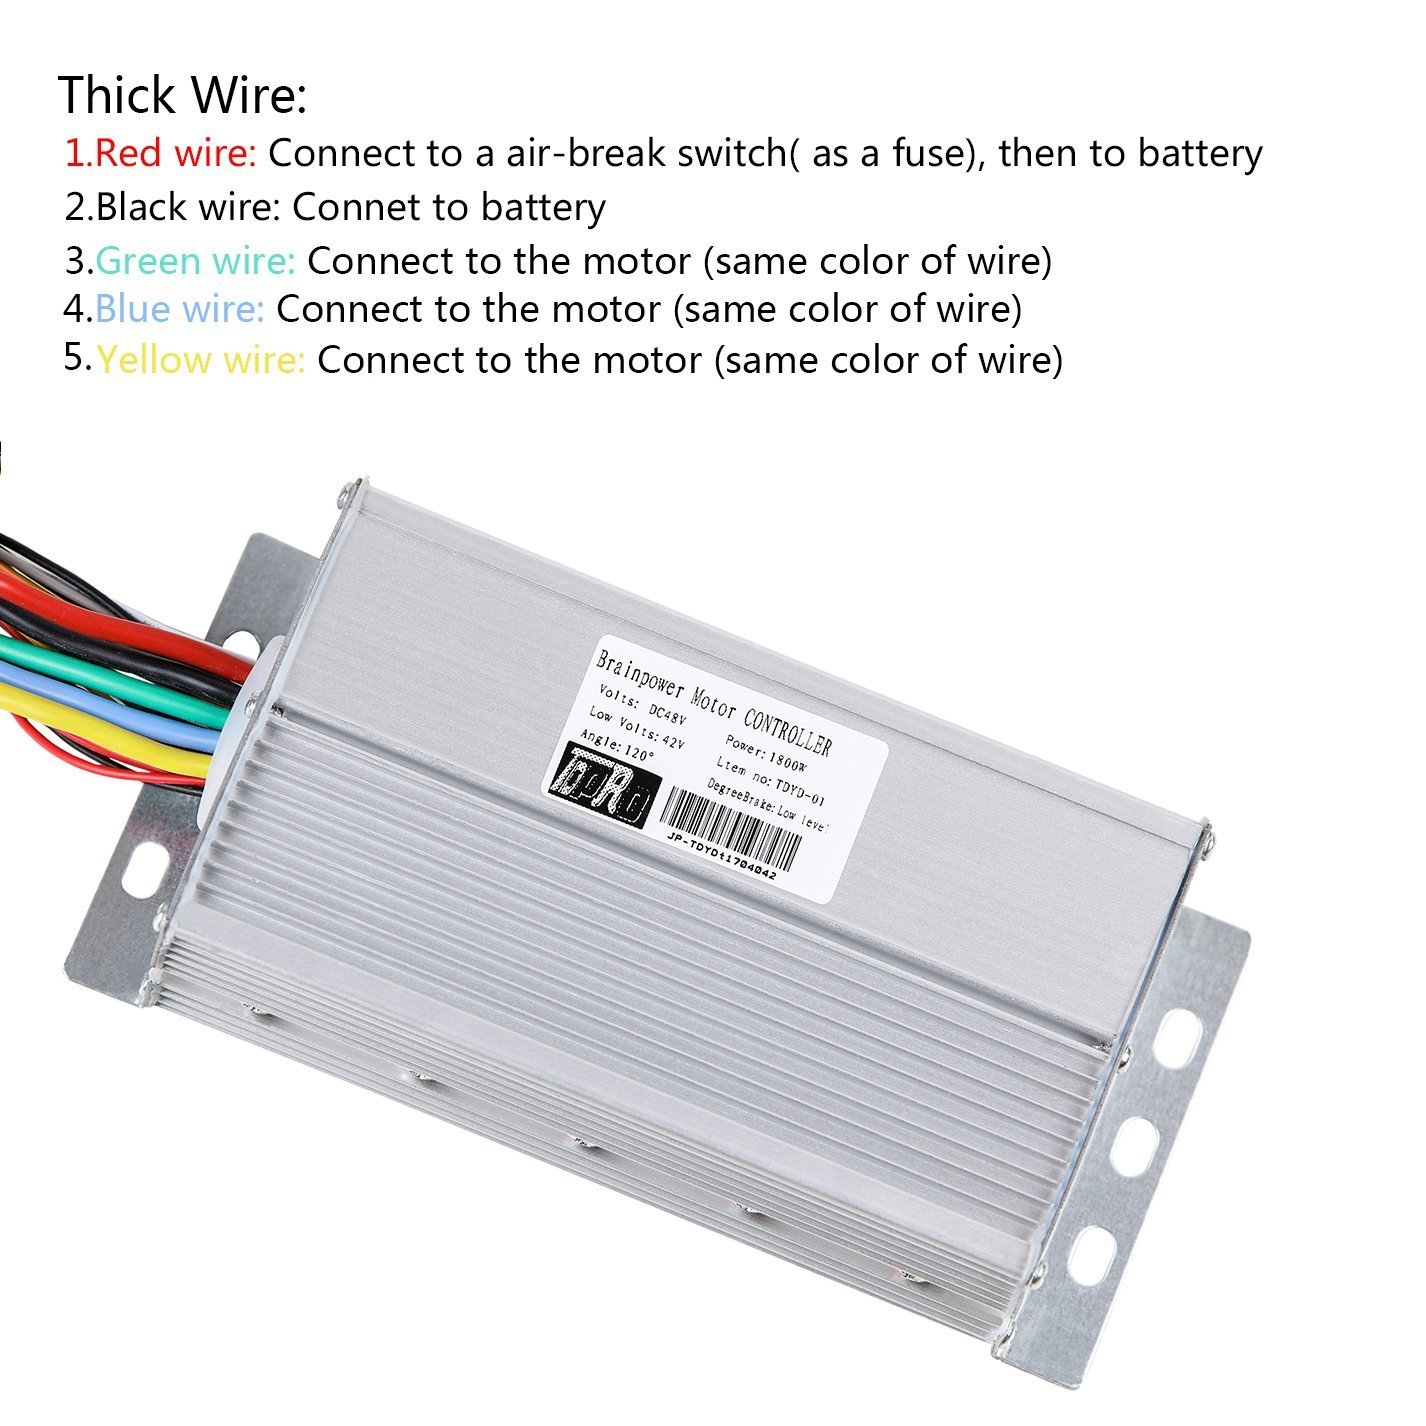 Zxtdr 48v 1800w Brushless Motor And Controller Throttle Wiring Diagram For Two Motors One Esc Recommended Grip Accelerator Pedal Set Electric Scooter Go Kart Bicycle E Bike Tricycle Moped